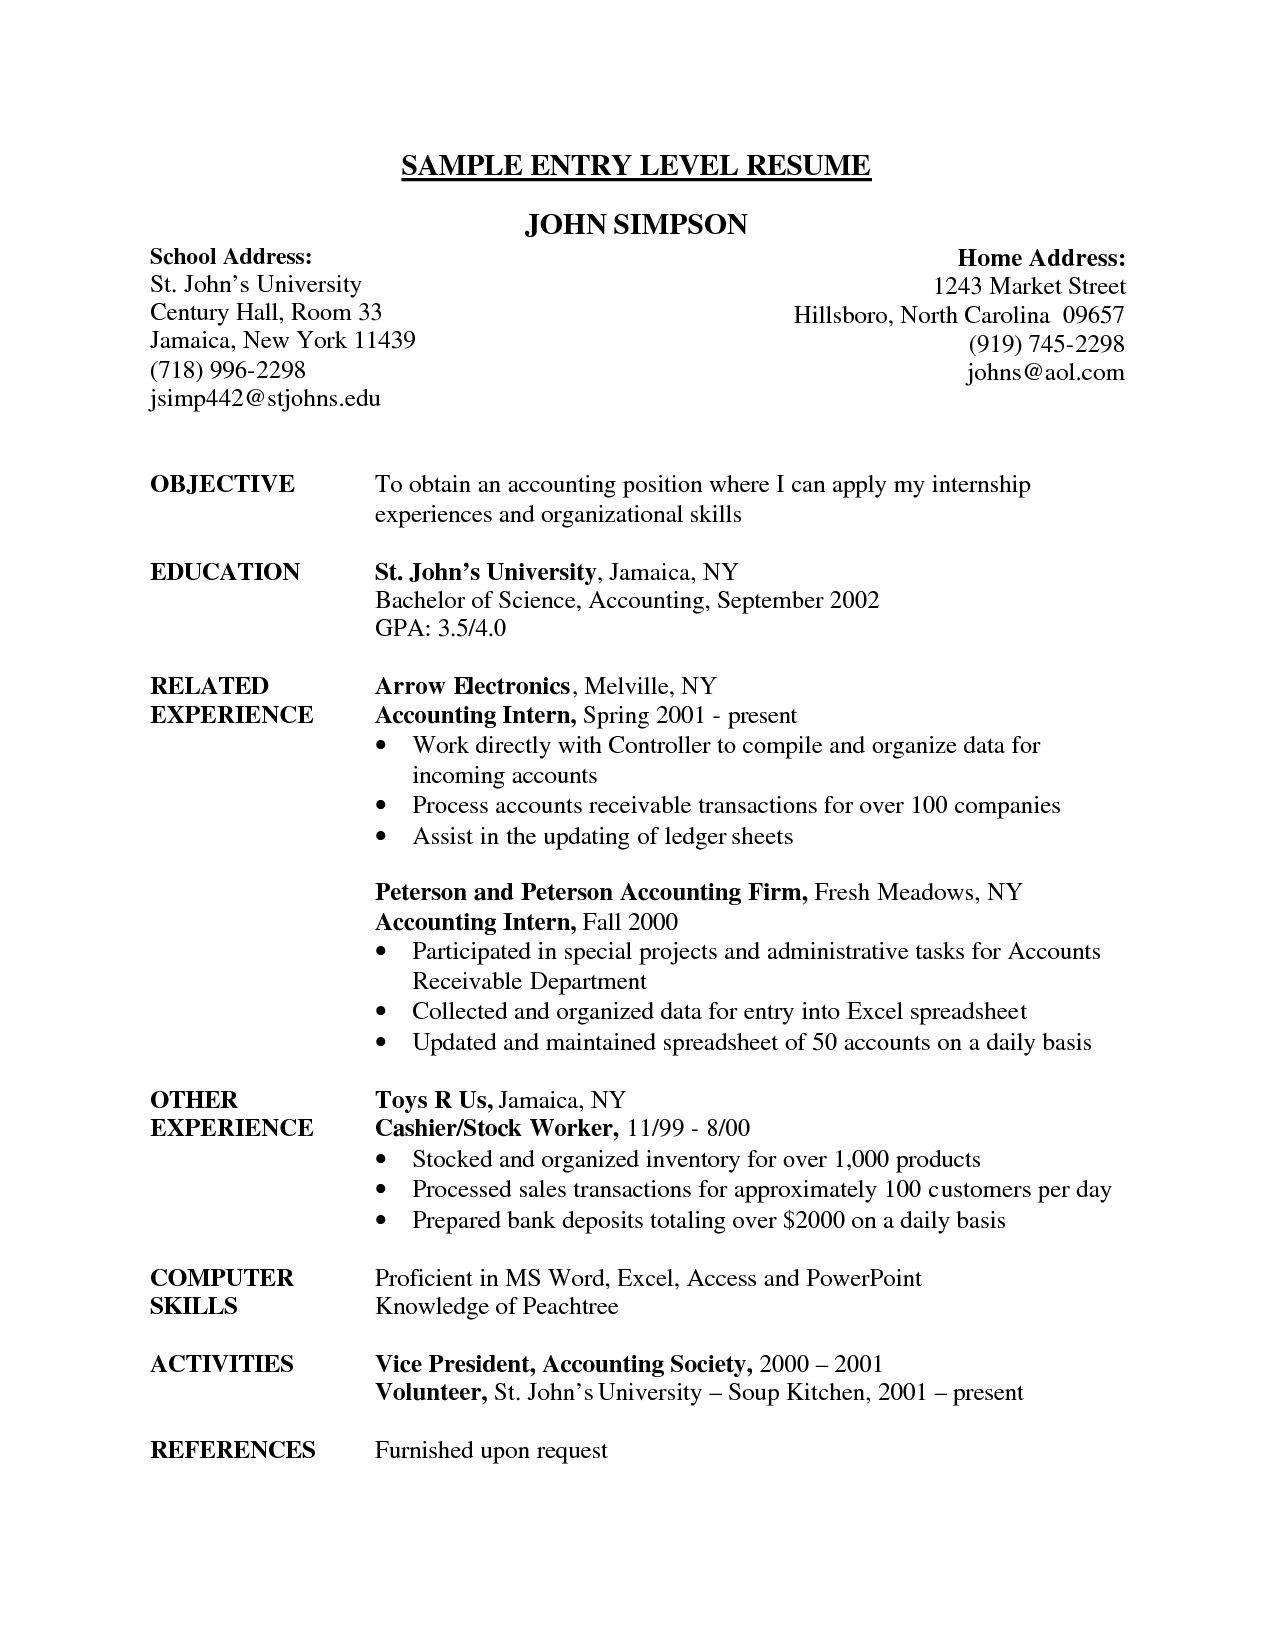 entry level resume example entry level job resume examples 26161fd4f